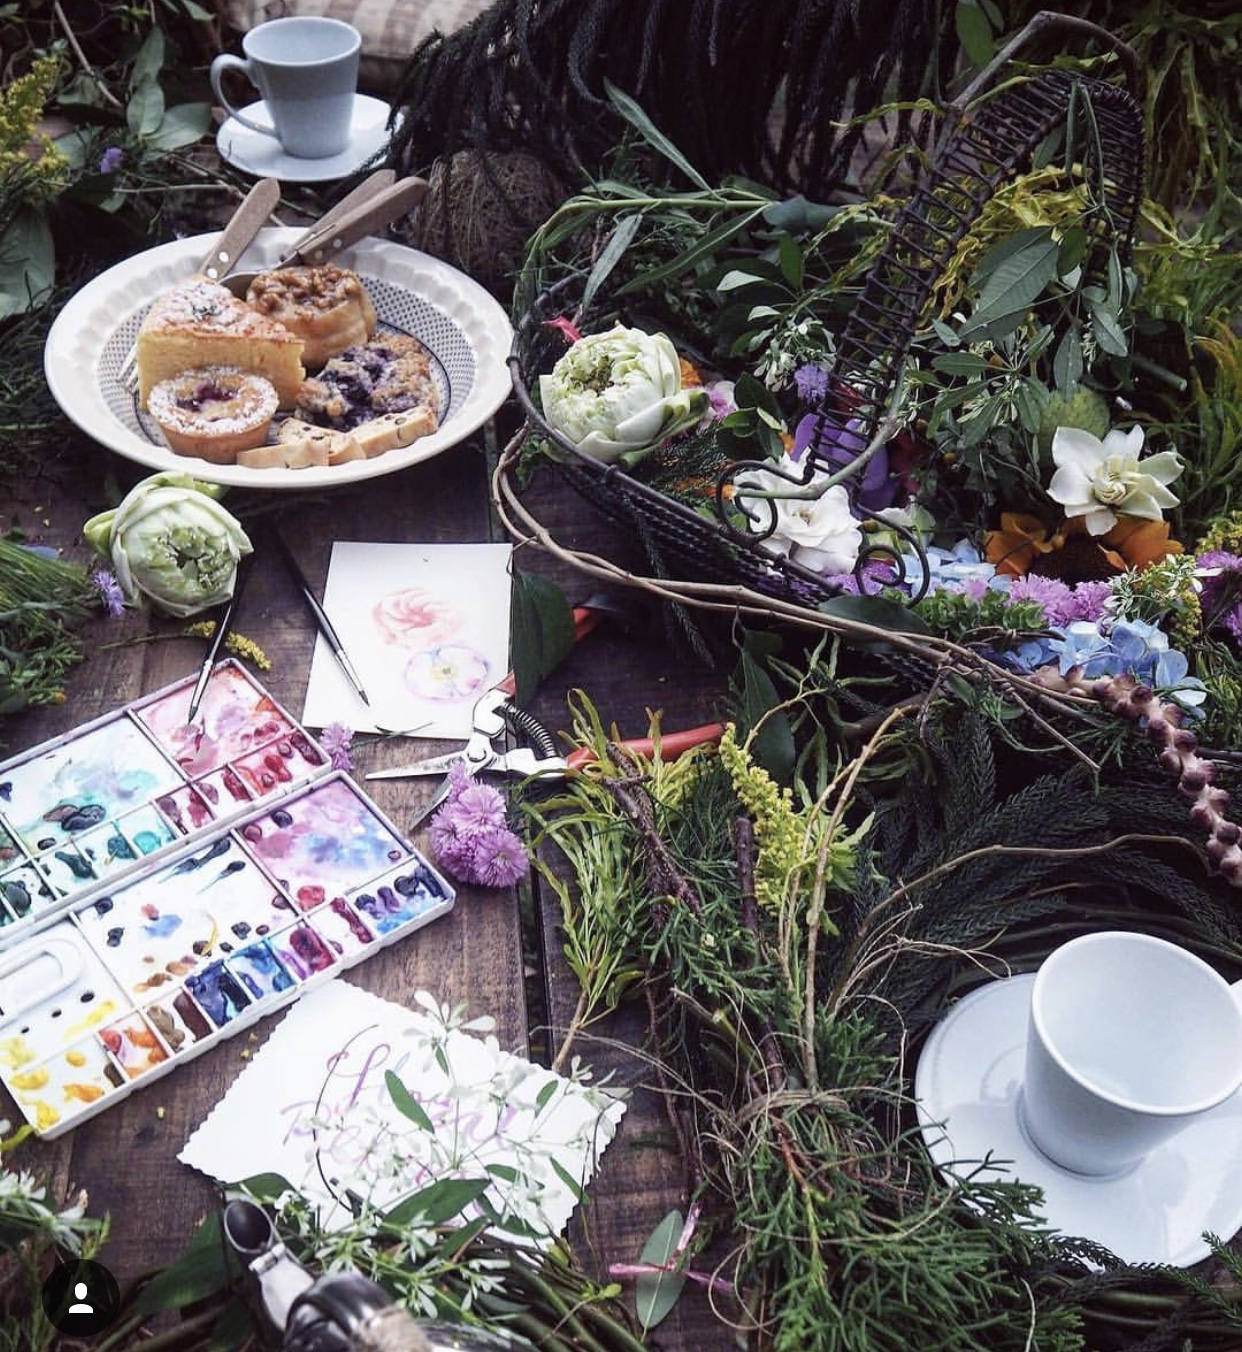 Held one of the workshops at natural setting of Forest Bake followed by their delectable cakes.